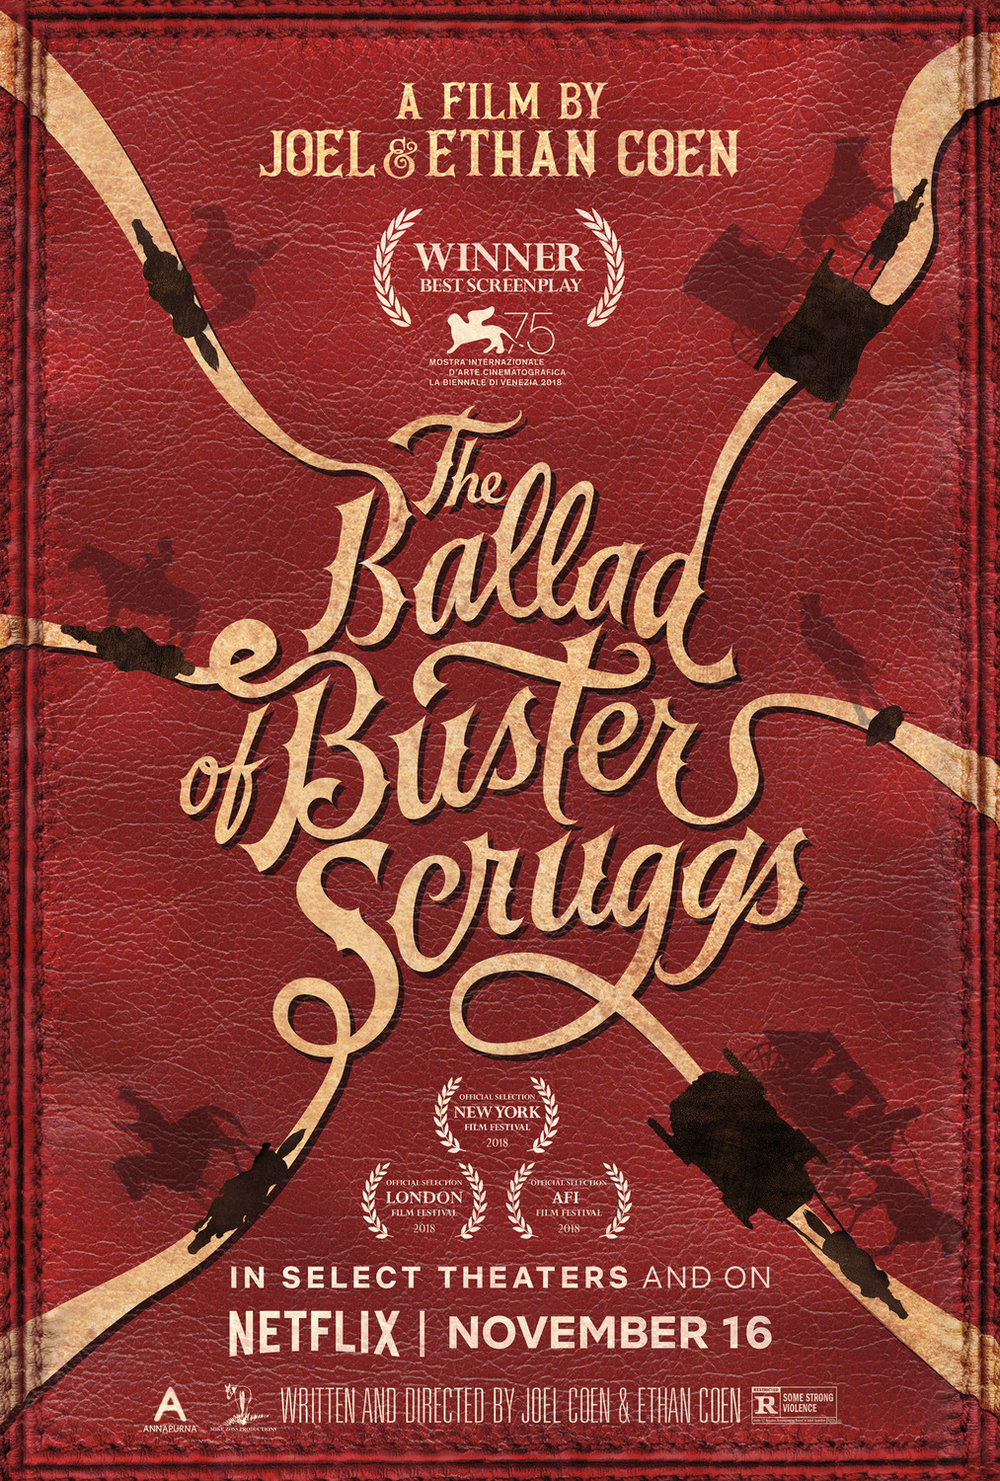 Ballad of Buster Scruggs, Coen Brothers, James Franco, Zoe Kazan, Tim Blake Nelson, Liam Neeson